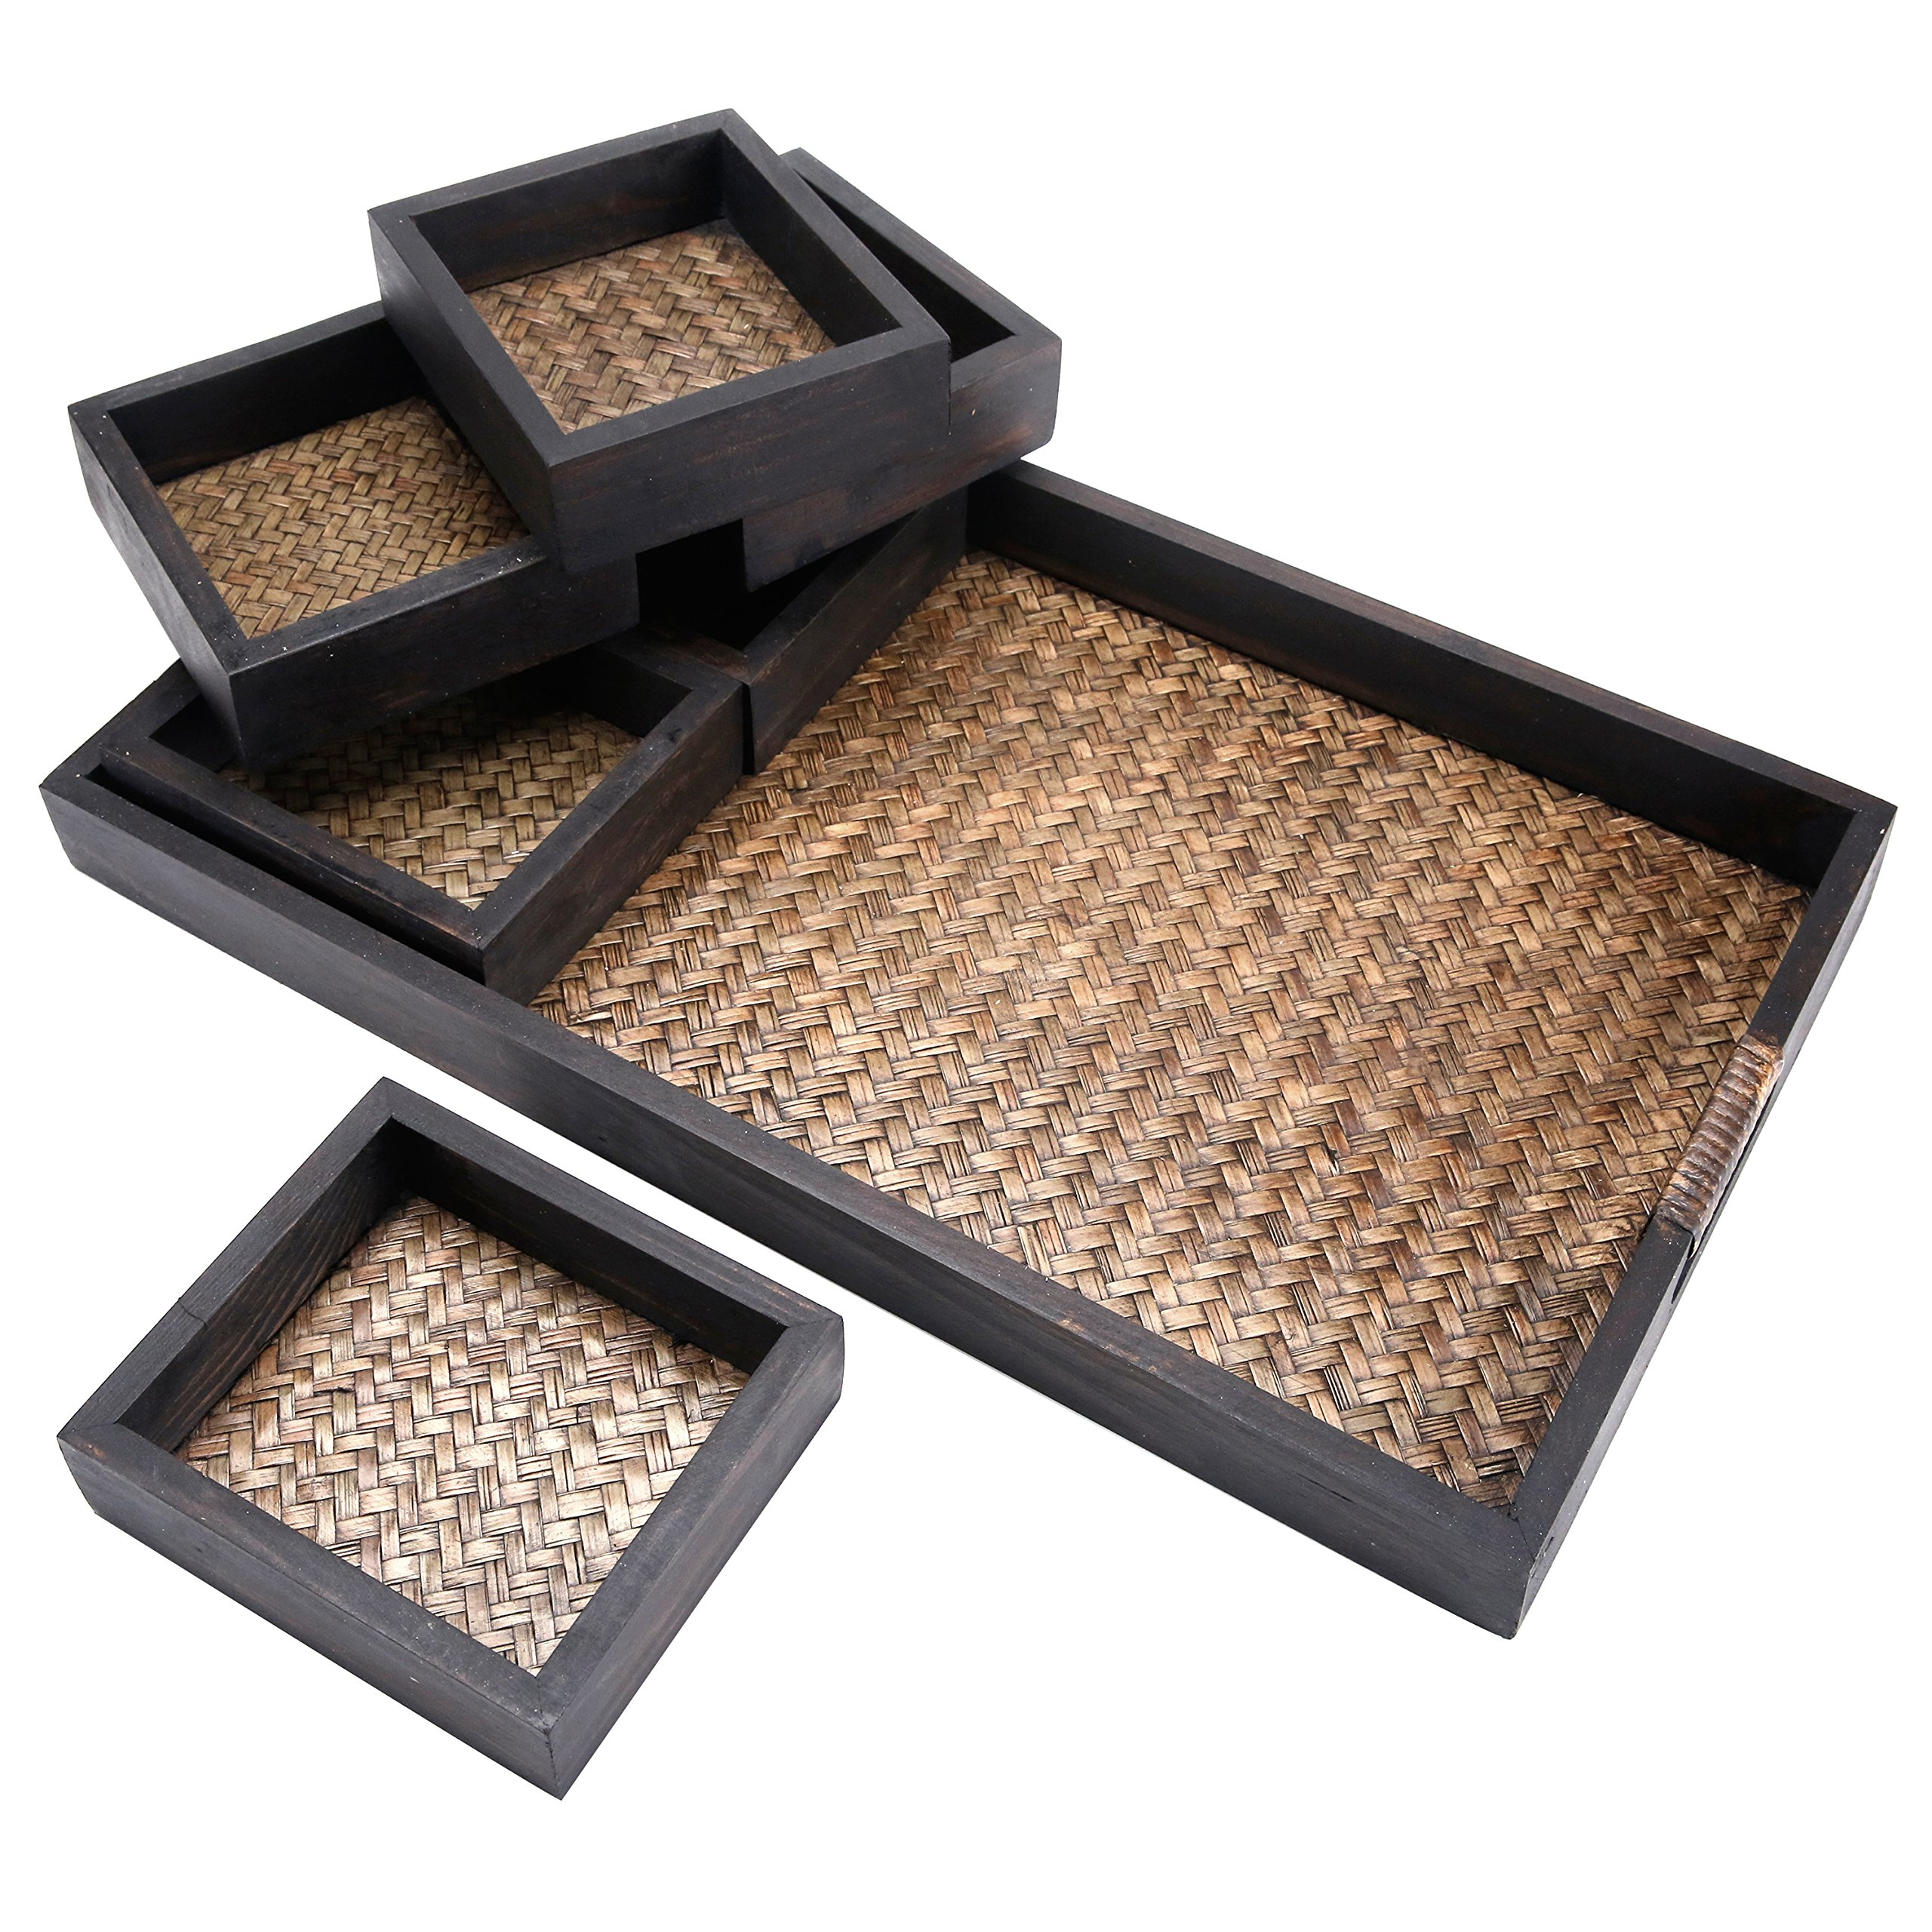 MyGift 7 Piece Flocked Nesting Mango Wood and Woven Rattan Jewelry Organizer Display Trays by MyGift (Image #2)